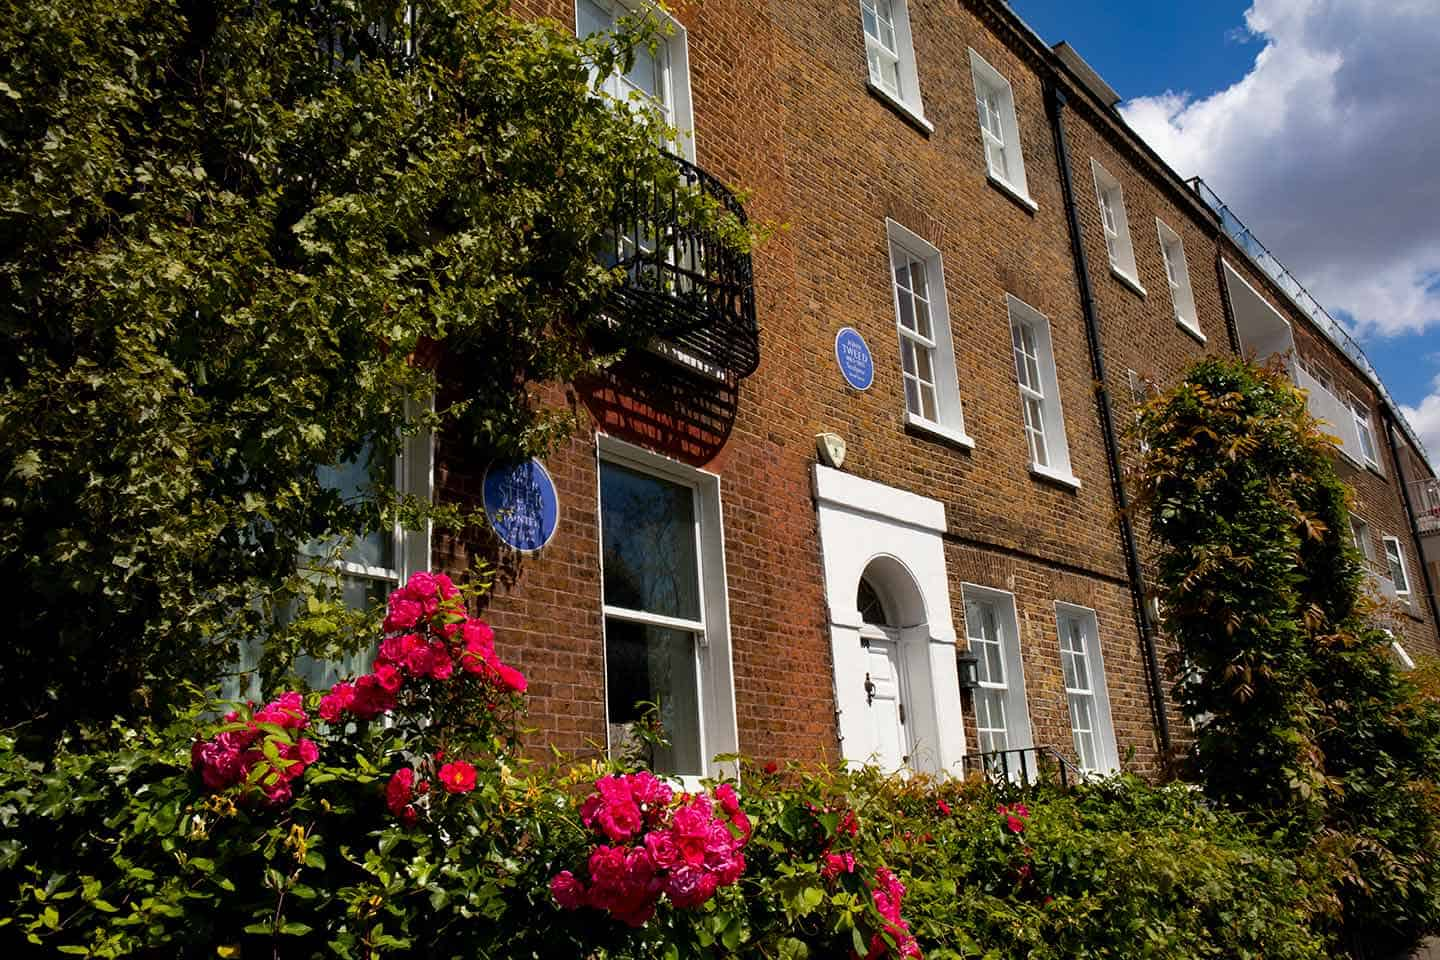 Image of fine townhouses on Cheyne Walk, Chelsea, London